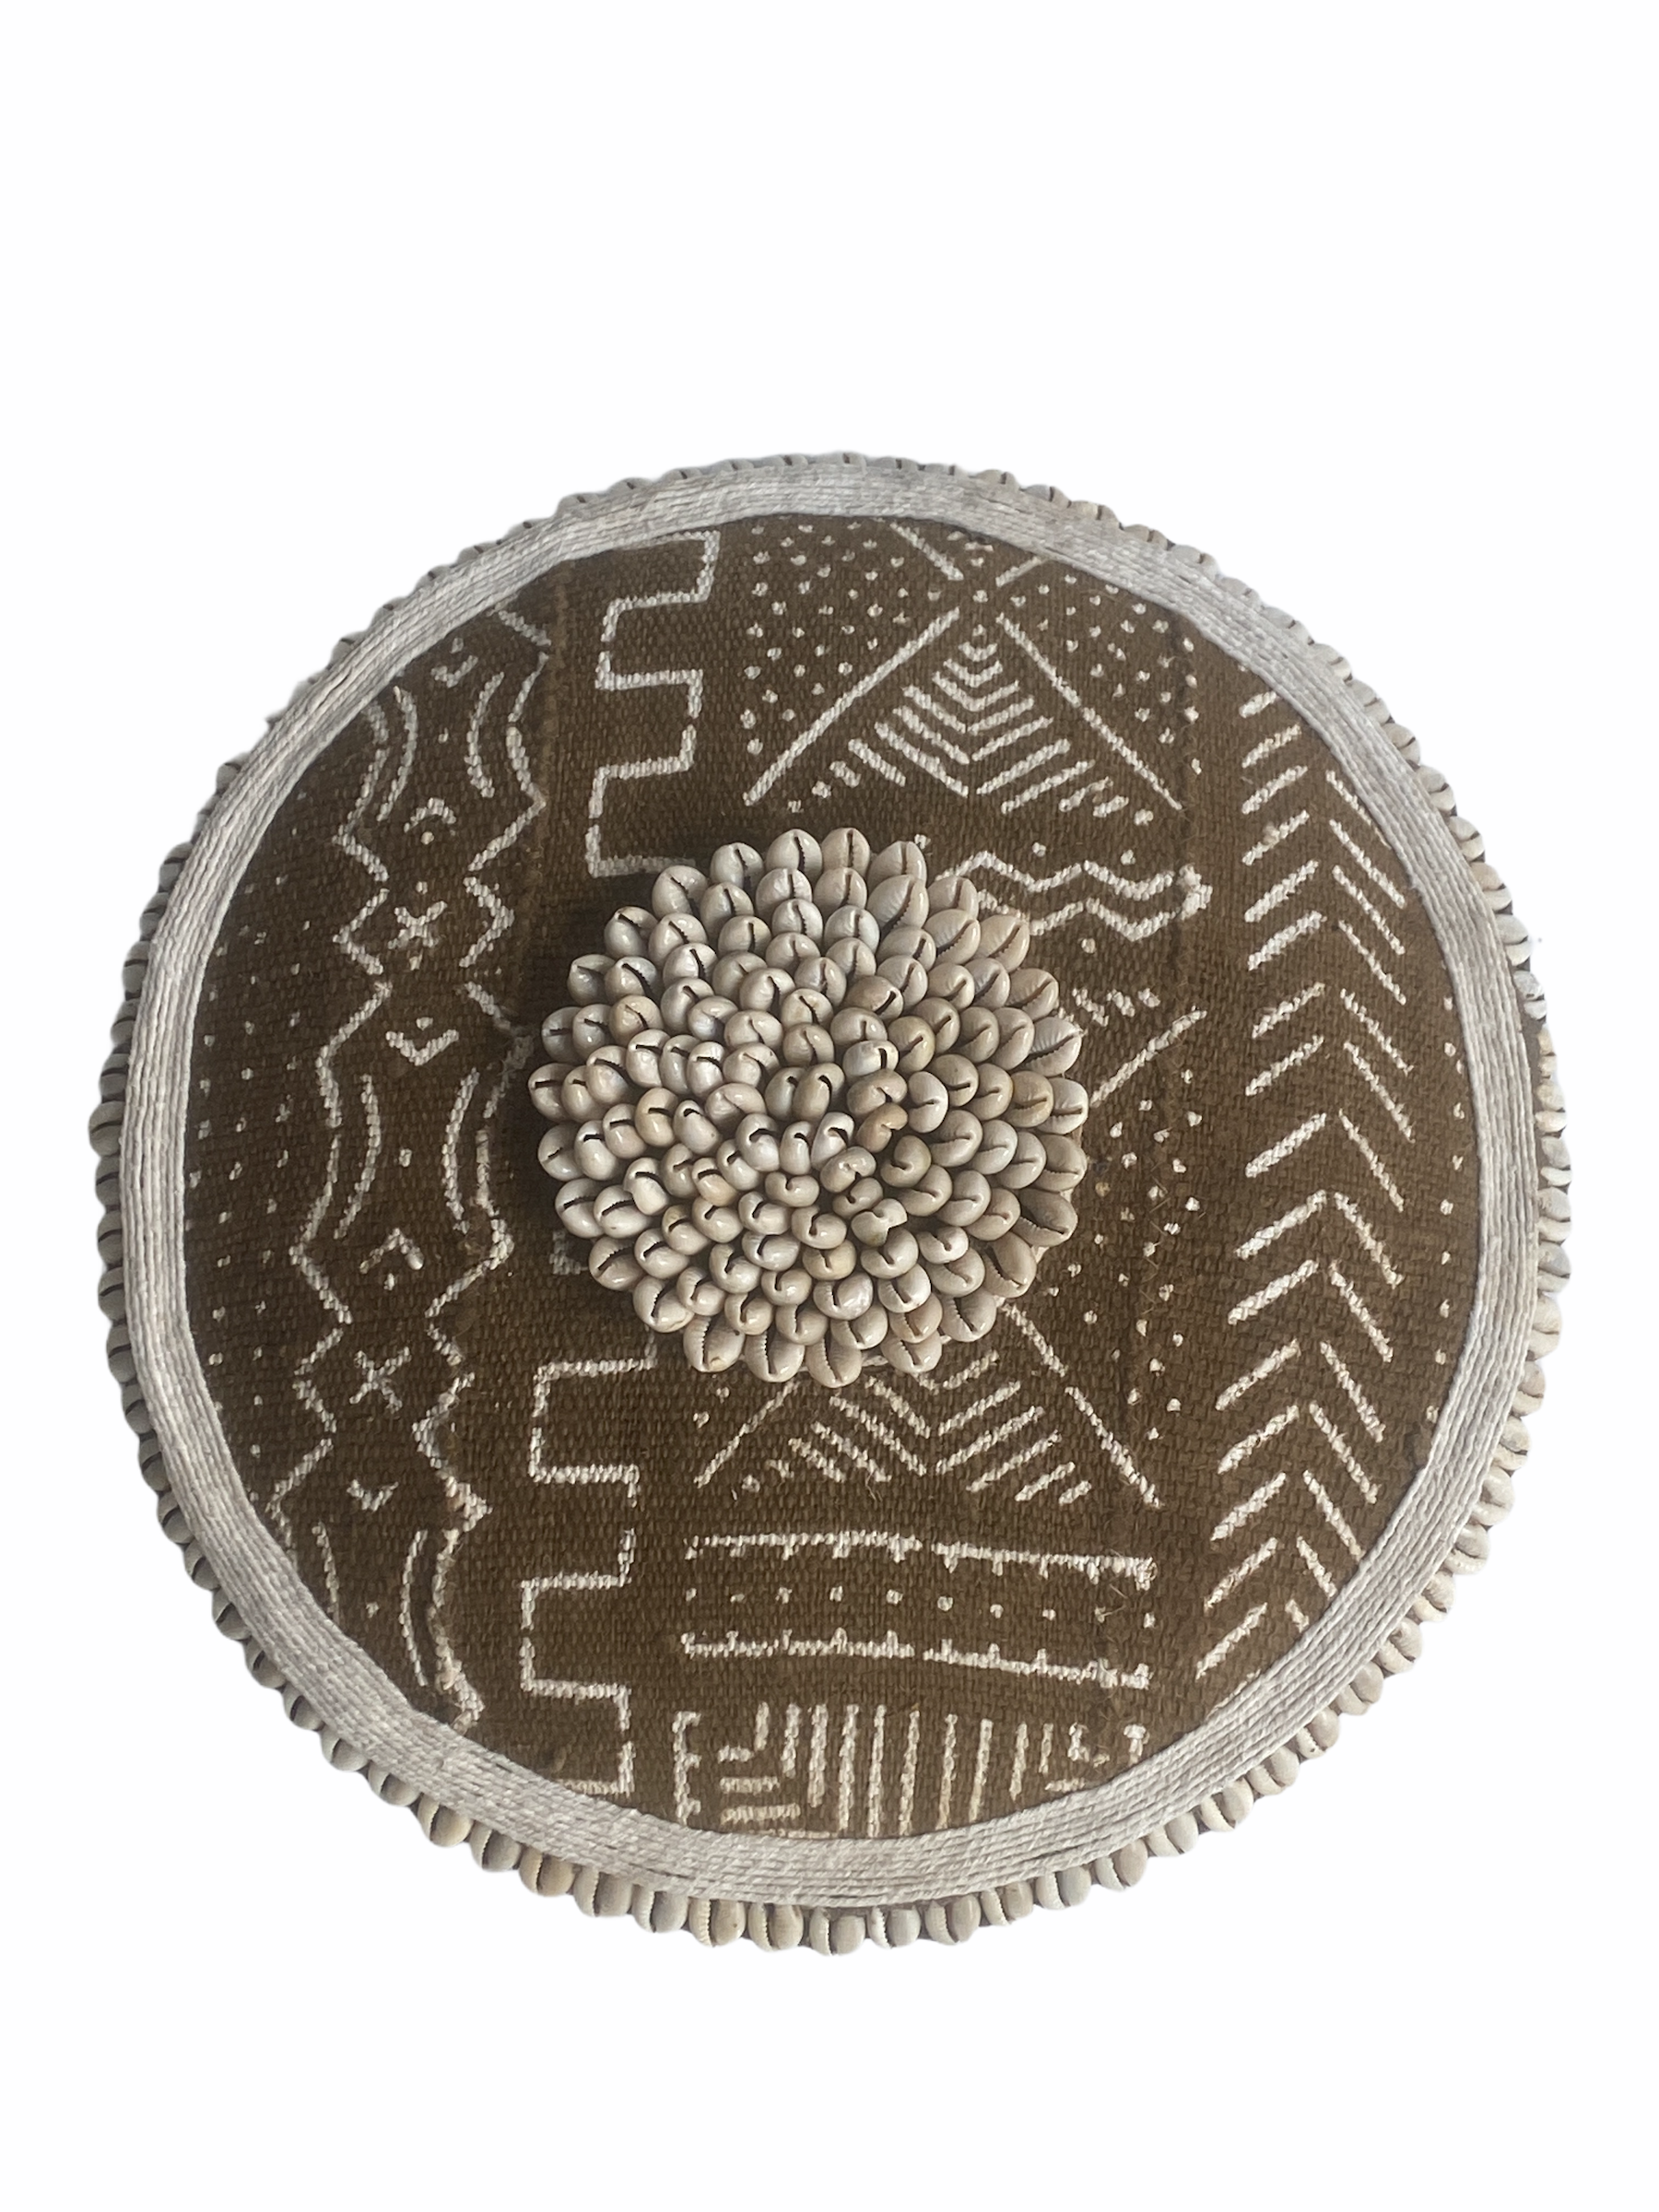 Cameroon Shield Mud cloth 30cm